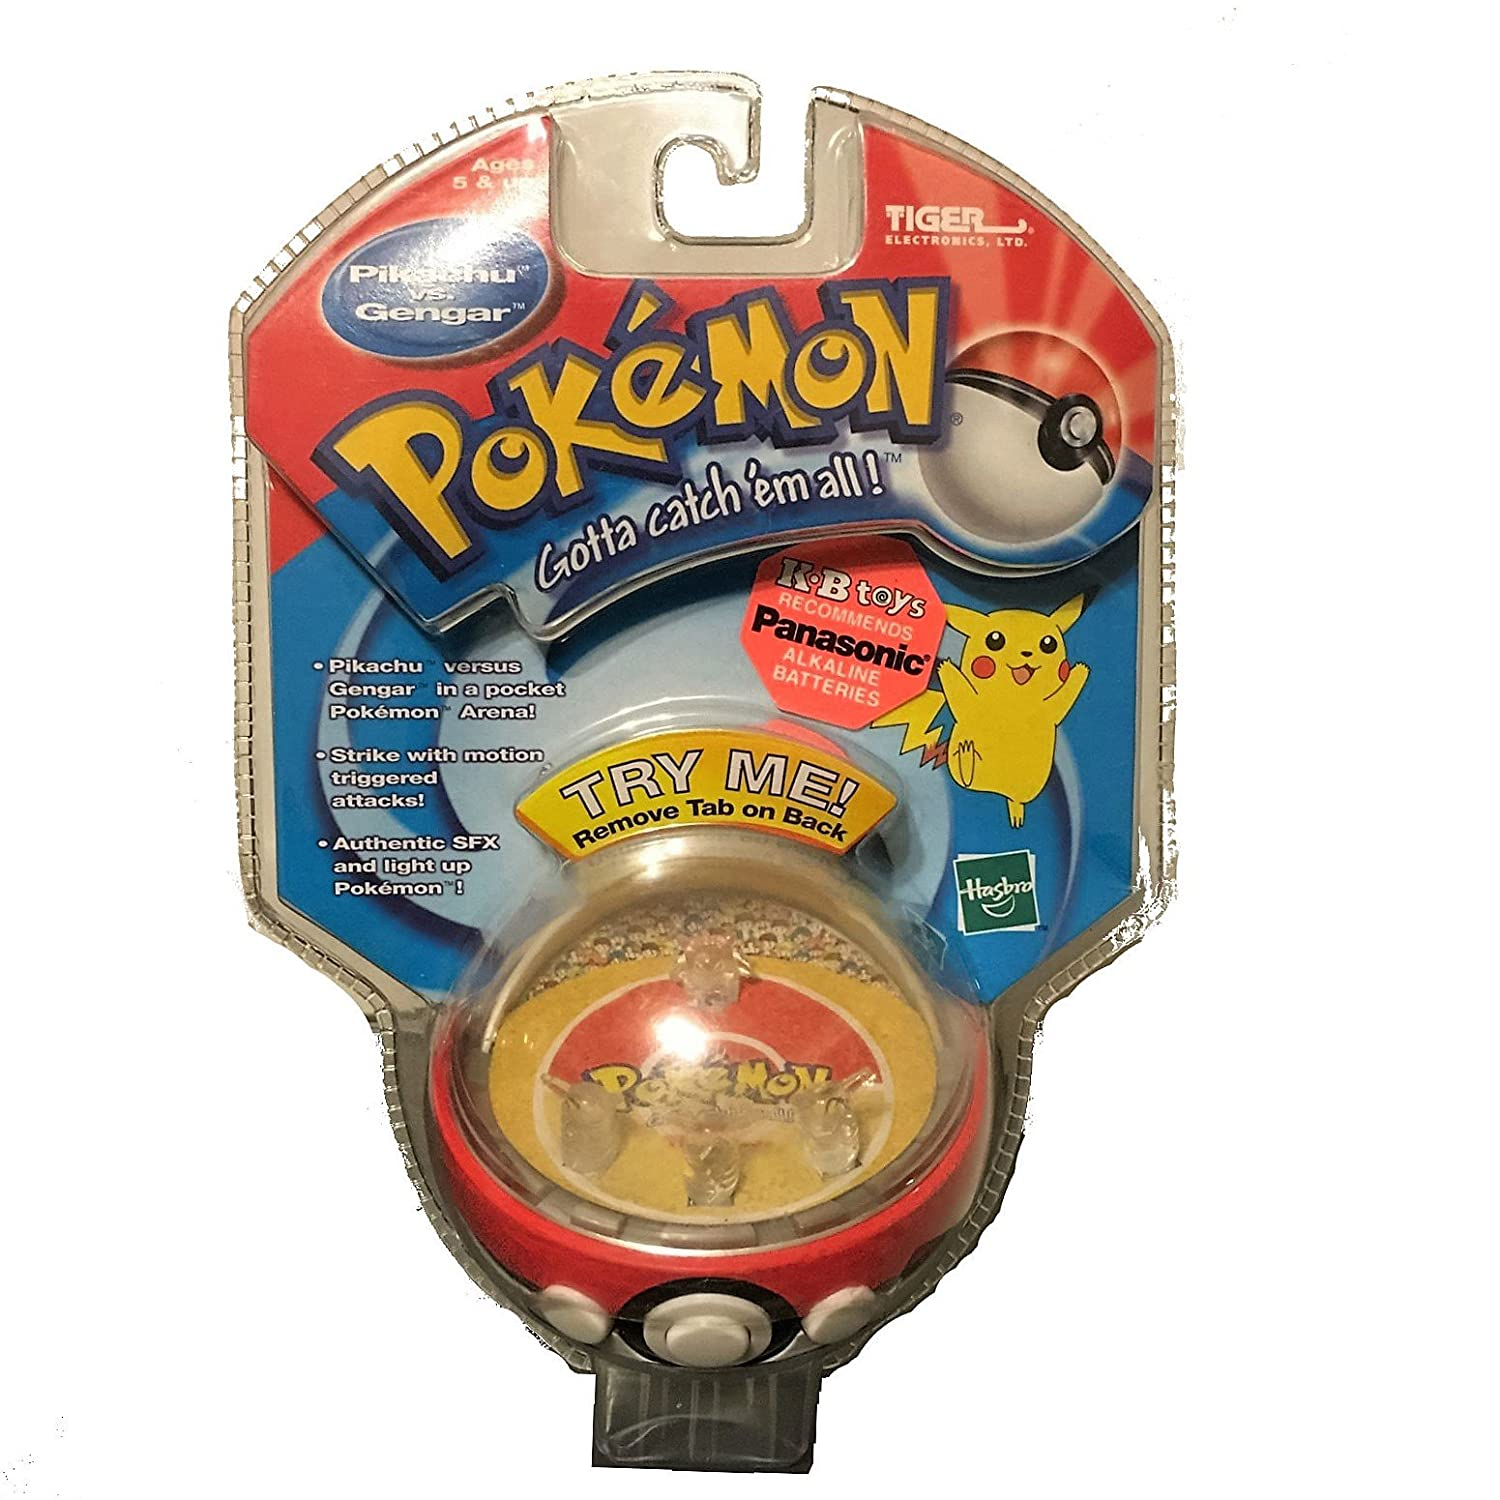 [タイガーエレクトロニクス]Tiger Electronics Pokemon Pocket Arena Eletronic Game Pikachu Vs Gengar LYSB01MDMXQRT-TOYS [並行輸入品] B01MDMXQRT